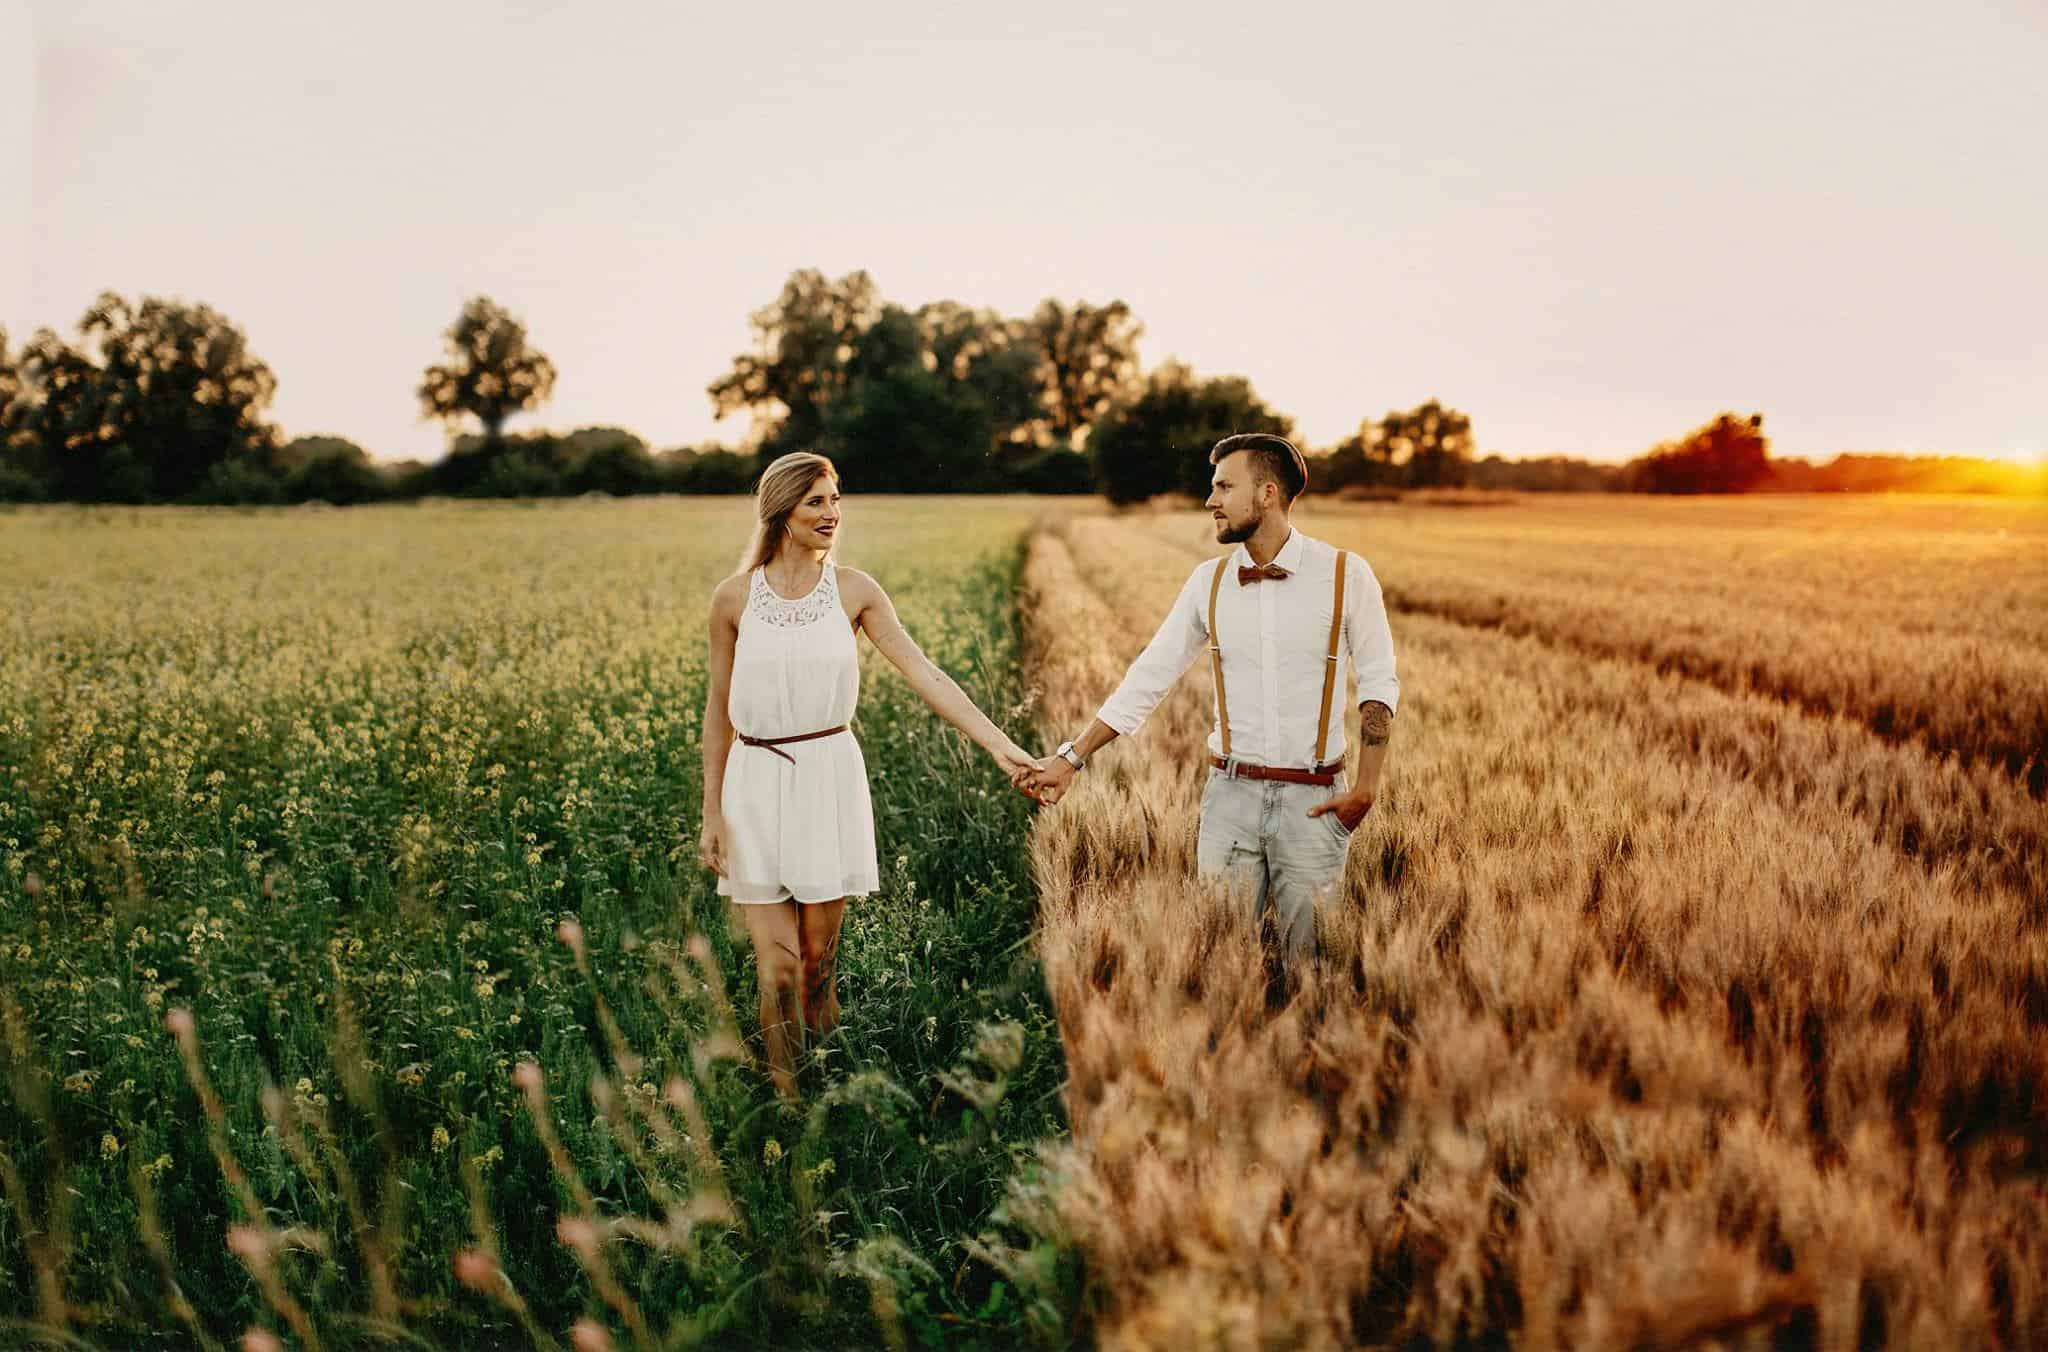 A man and a woman standing in a field holding hands